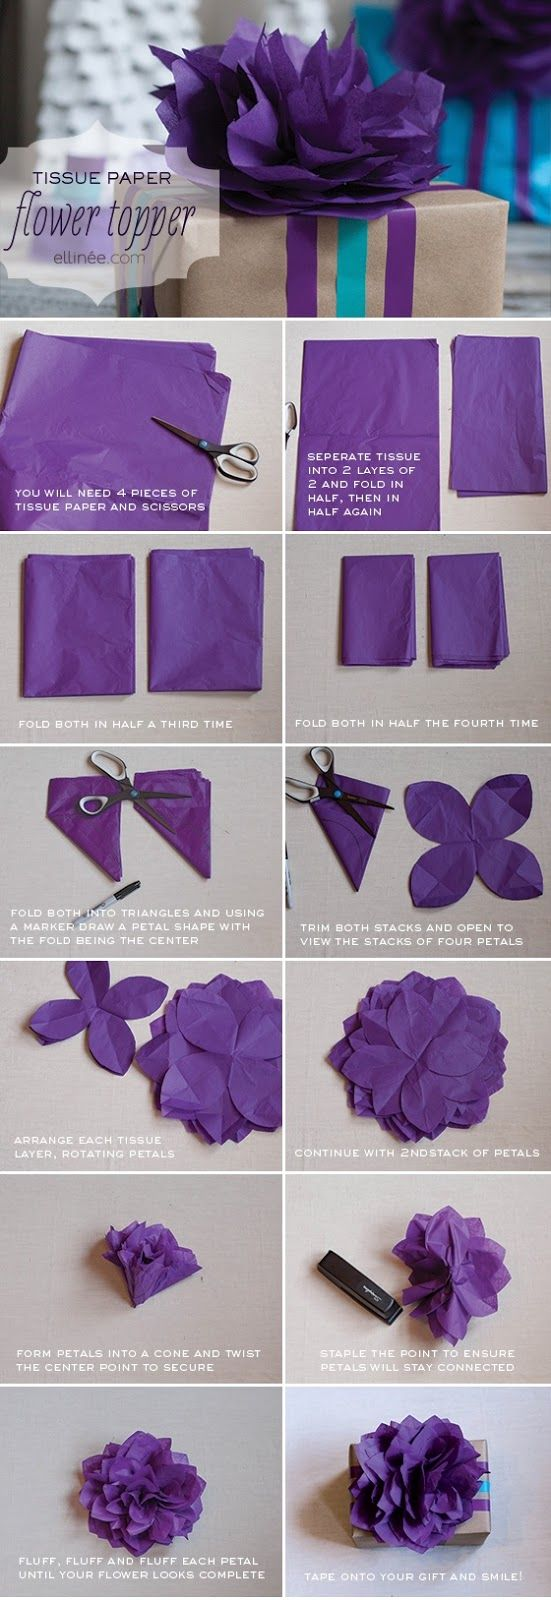 Creative Stuff: DIY Tissue Paper Flower Tutorial